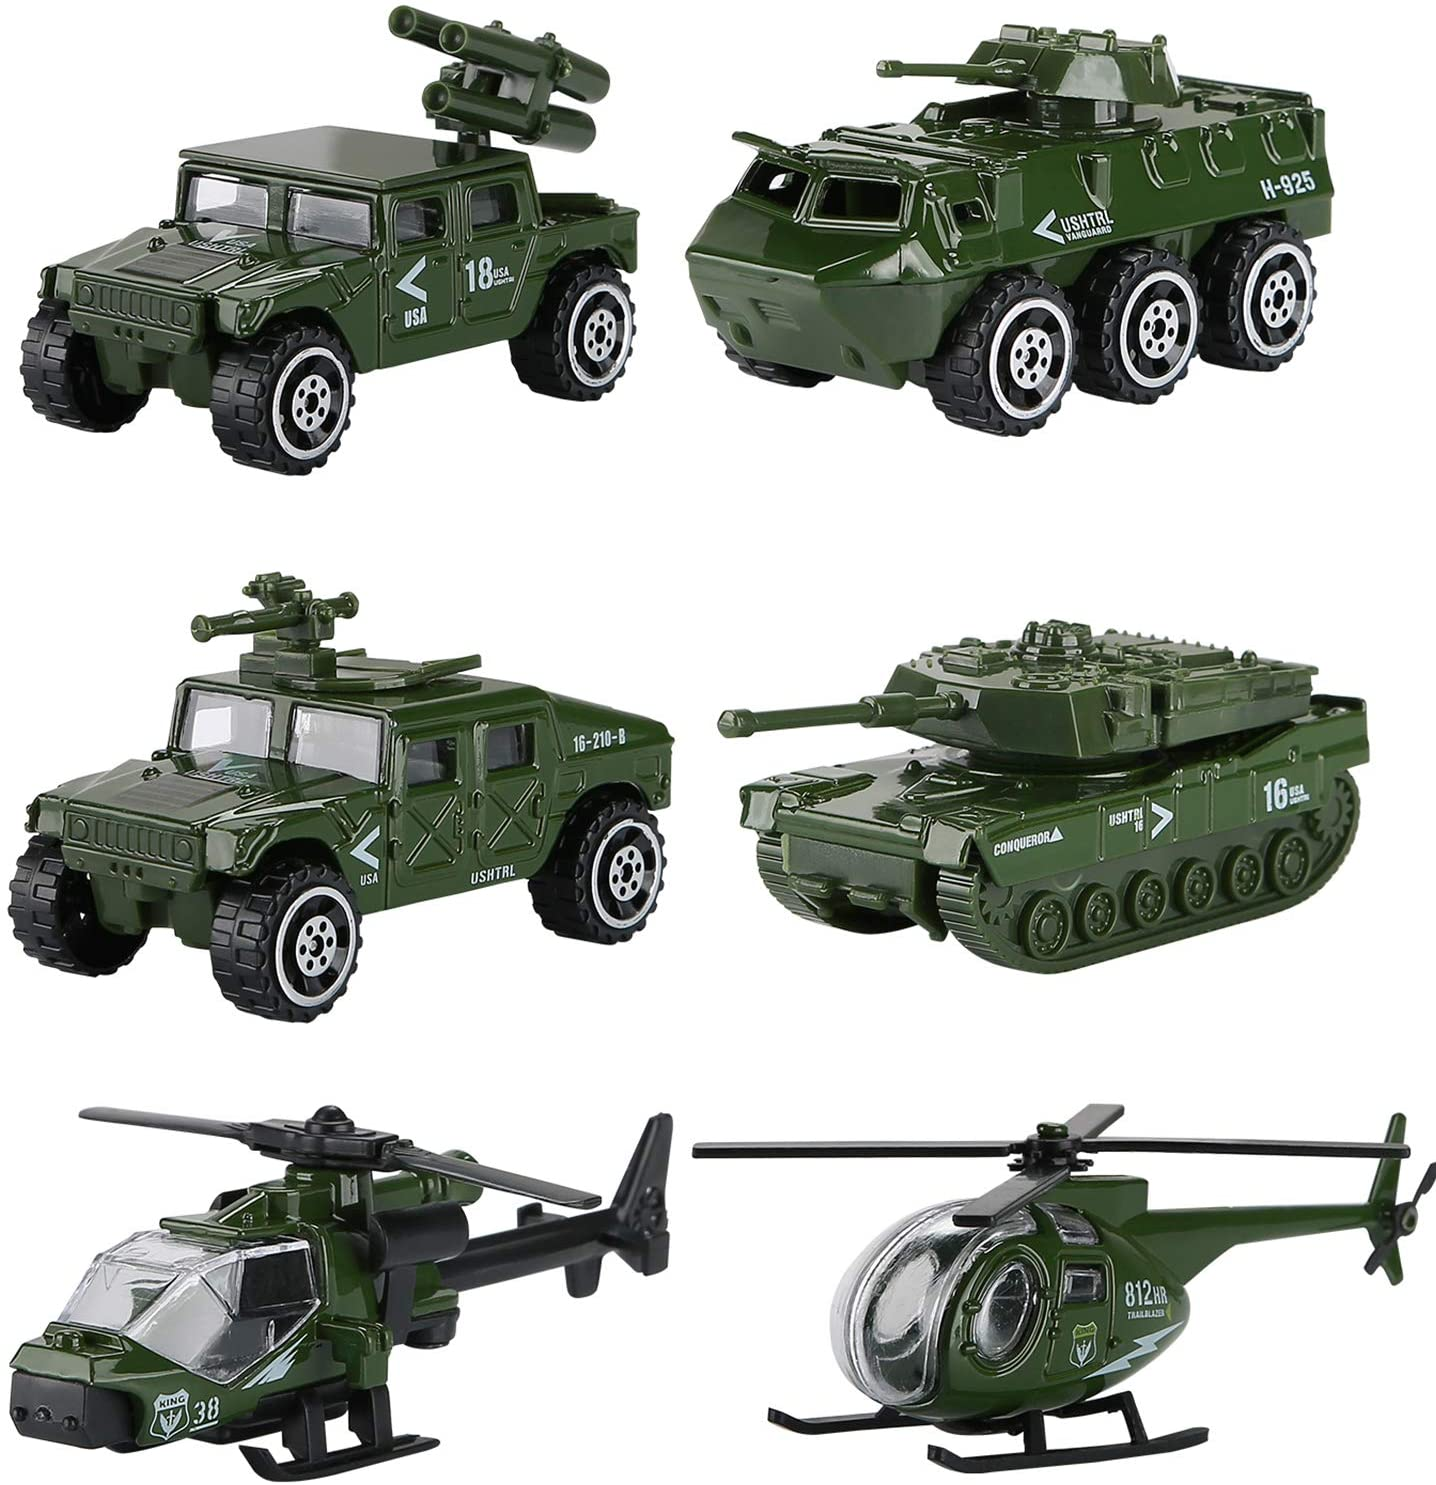 Diecast Military Toy Vehicles | Hautton